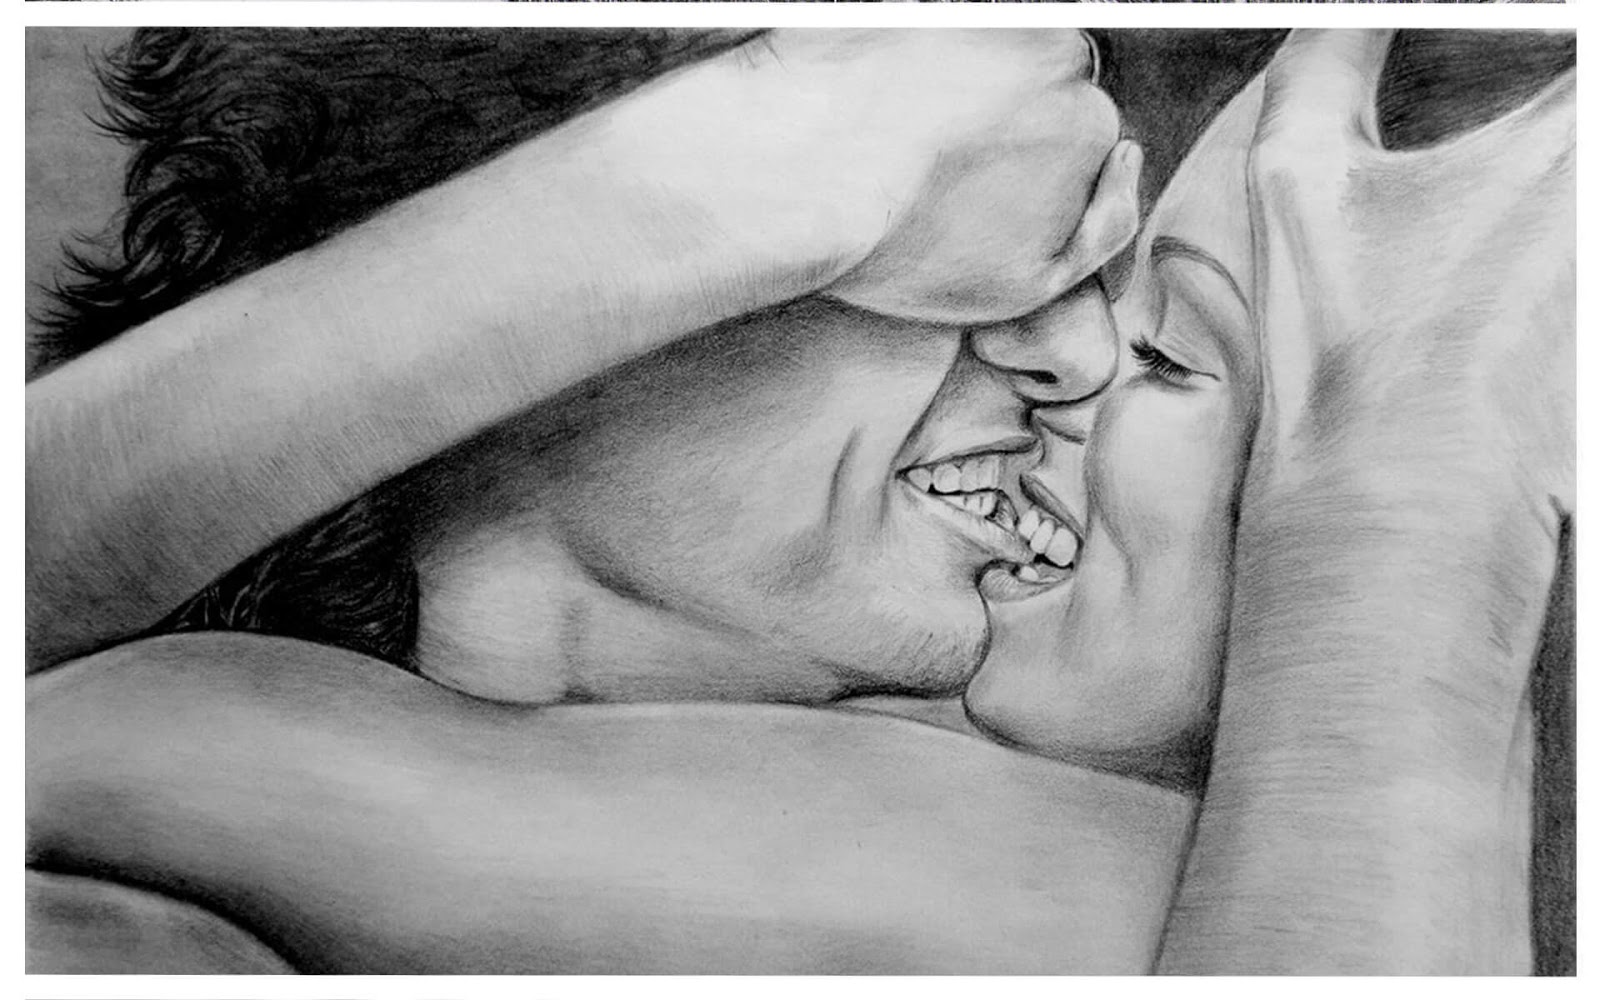 20 Mind-Blowing Pencil Drawings By Greek Artist That Illustrate The Beauty Of Love - I fall in love with your smile all the time